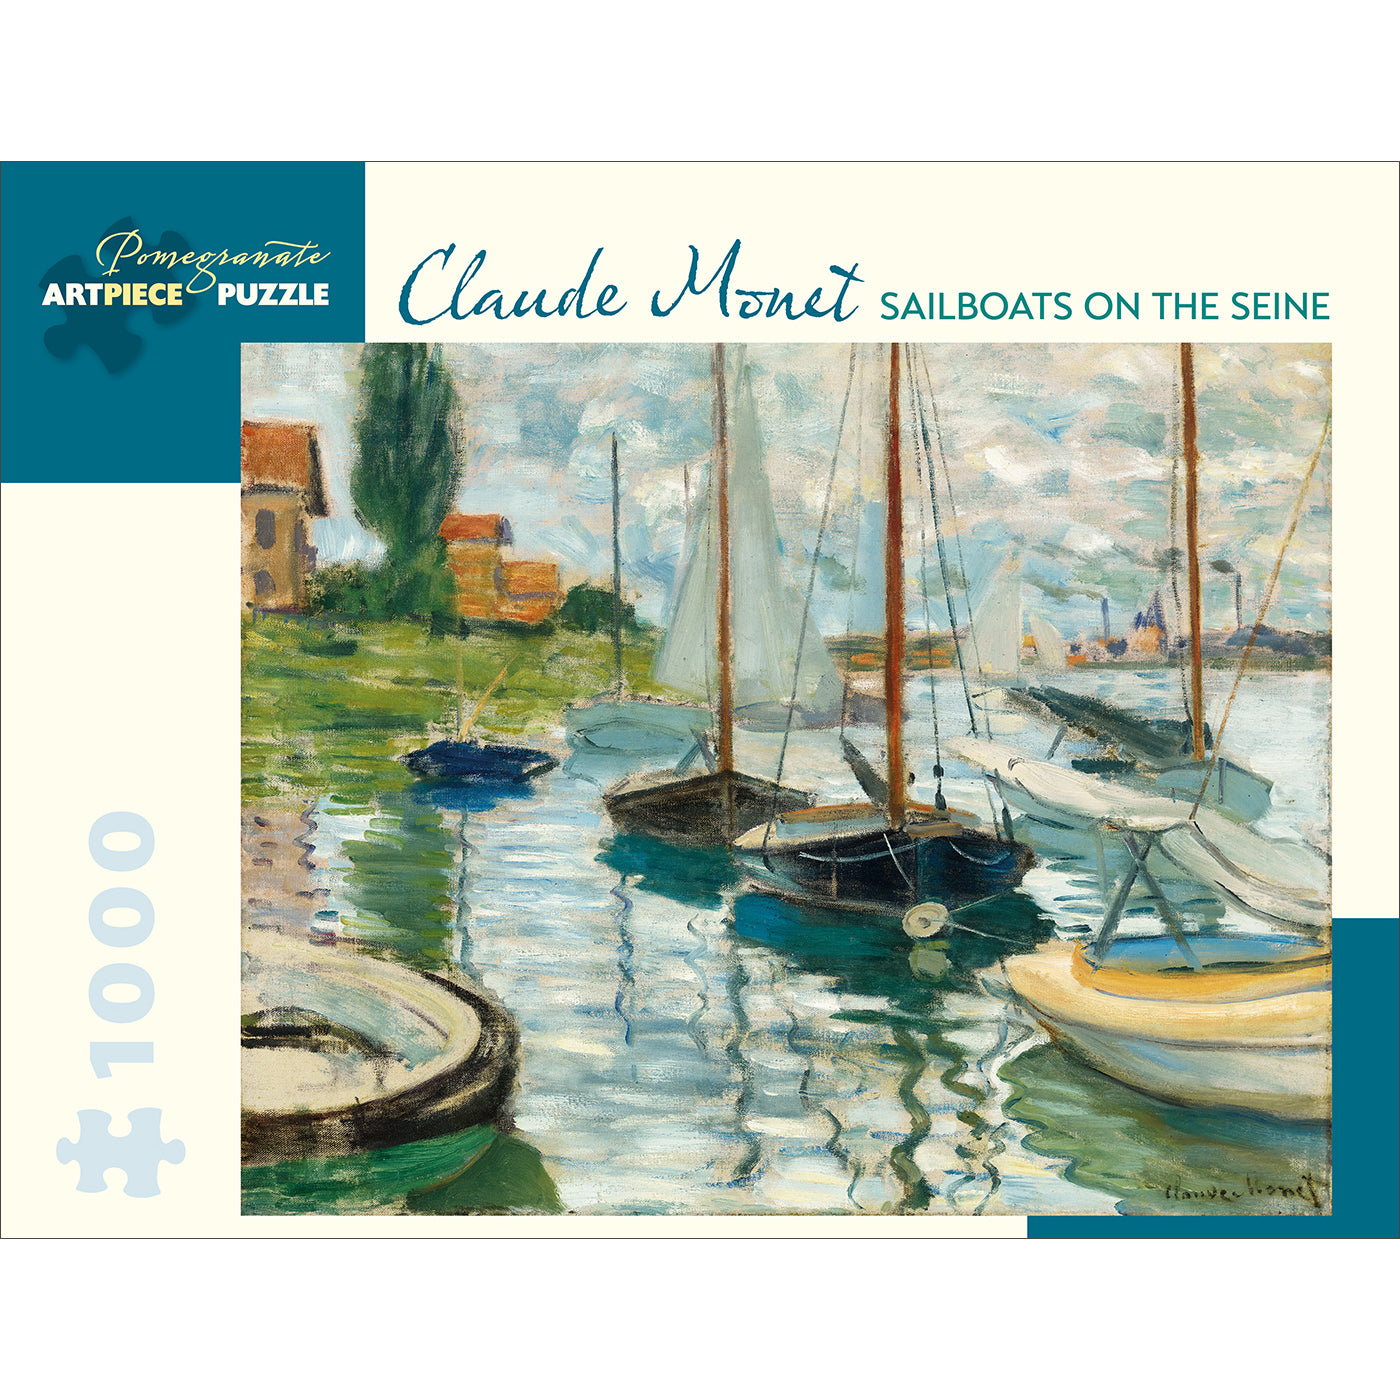 Monet's Sailboats on the Seine Puzzle - 1,000 Pieces